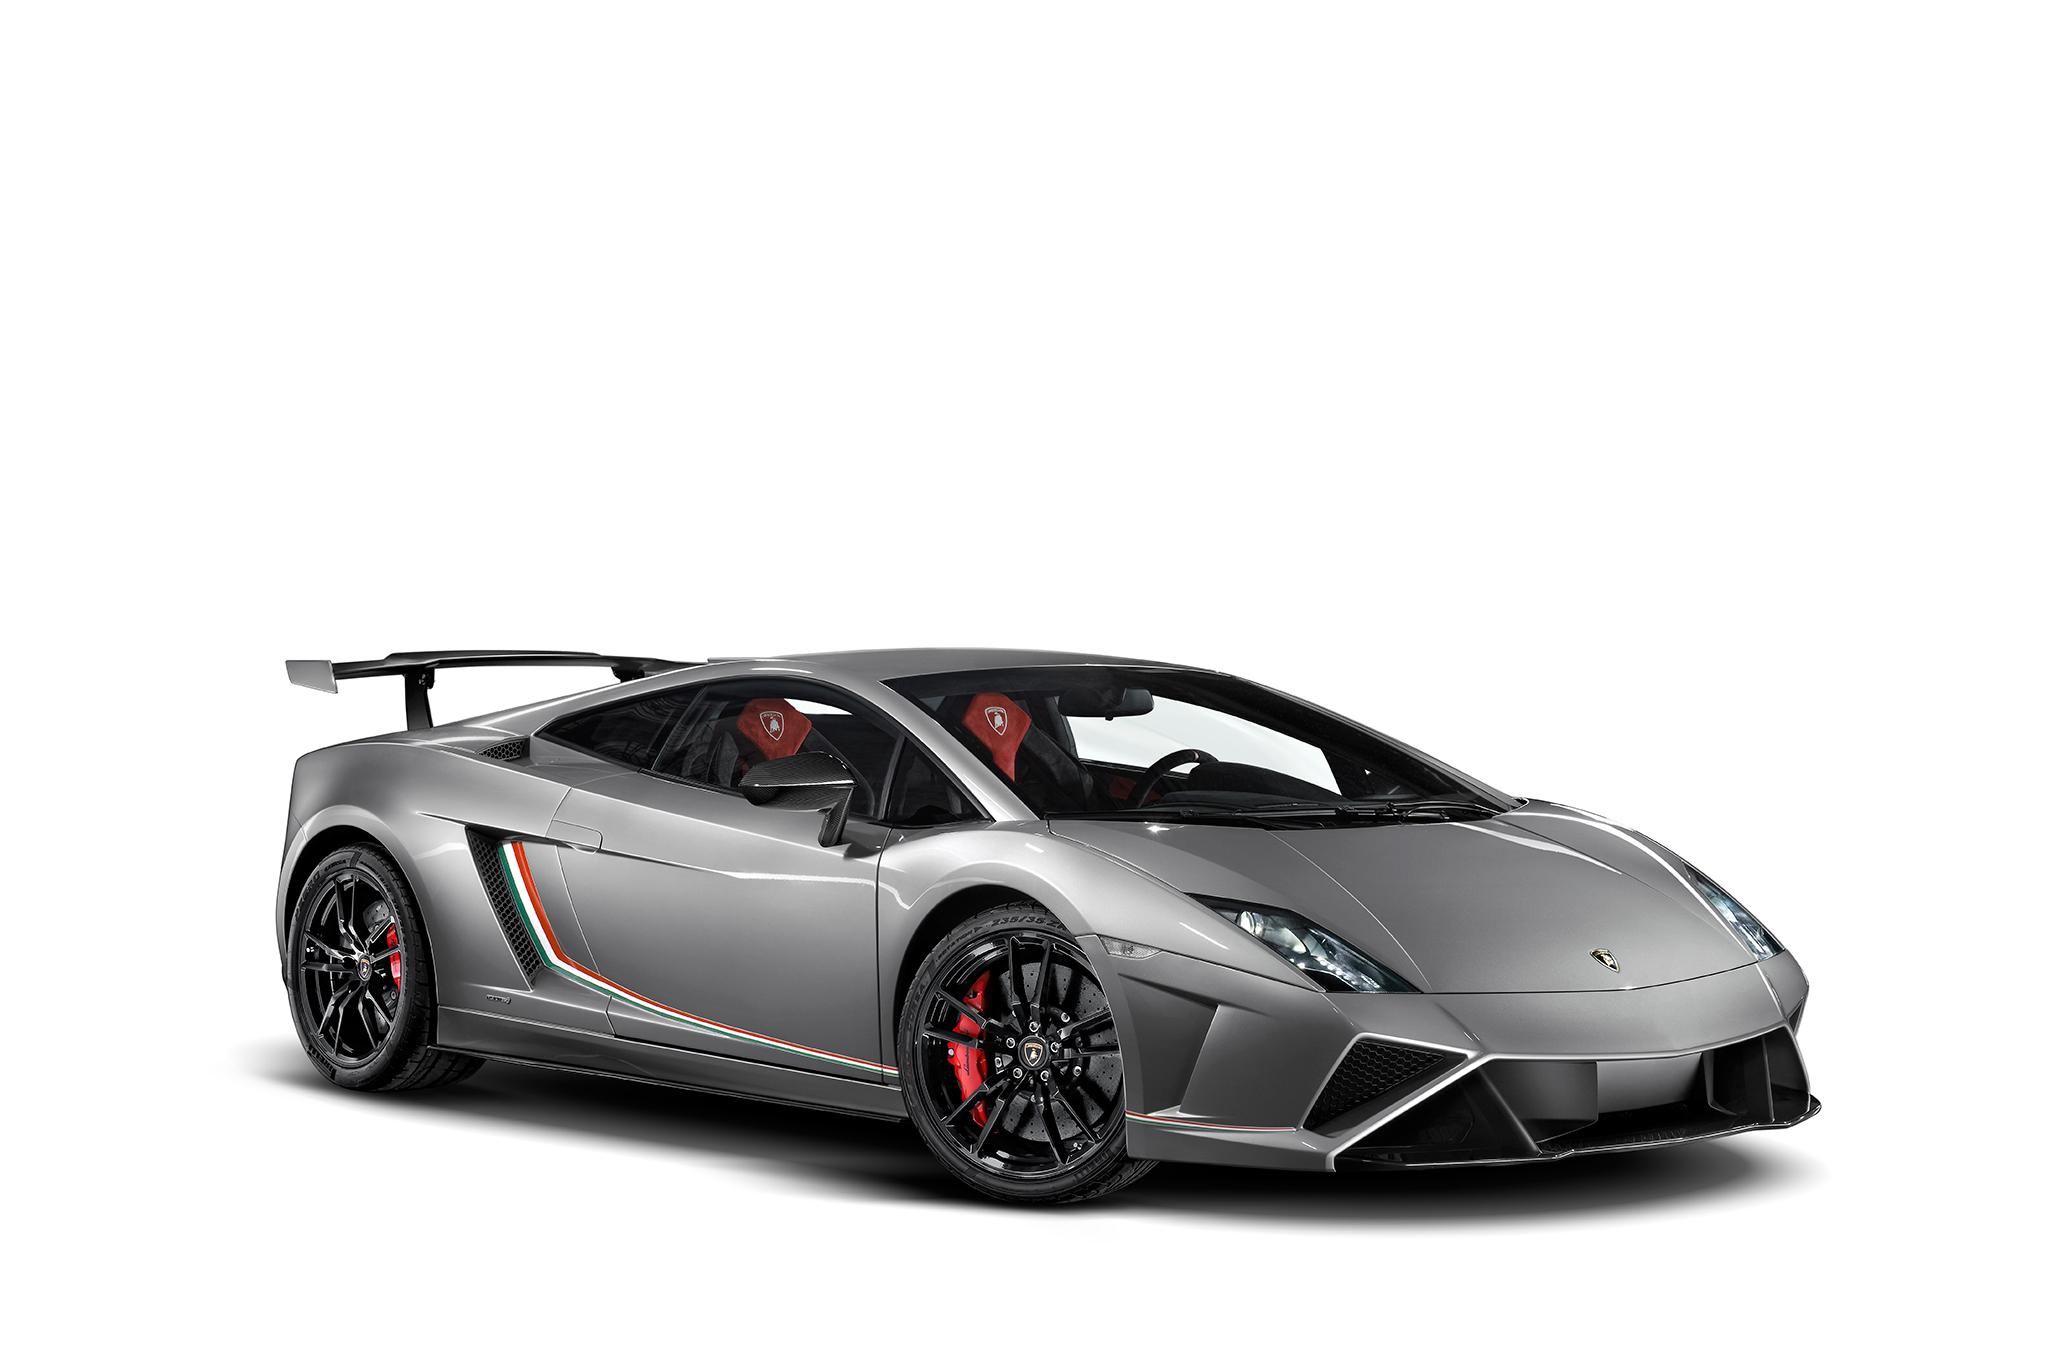 Lamborghini Gallardo Replacement To Be Named Huracan Motortrend